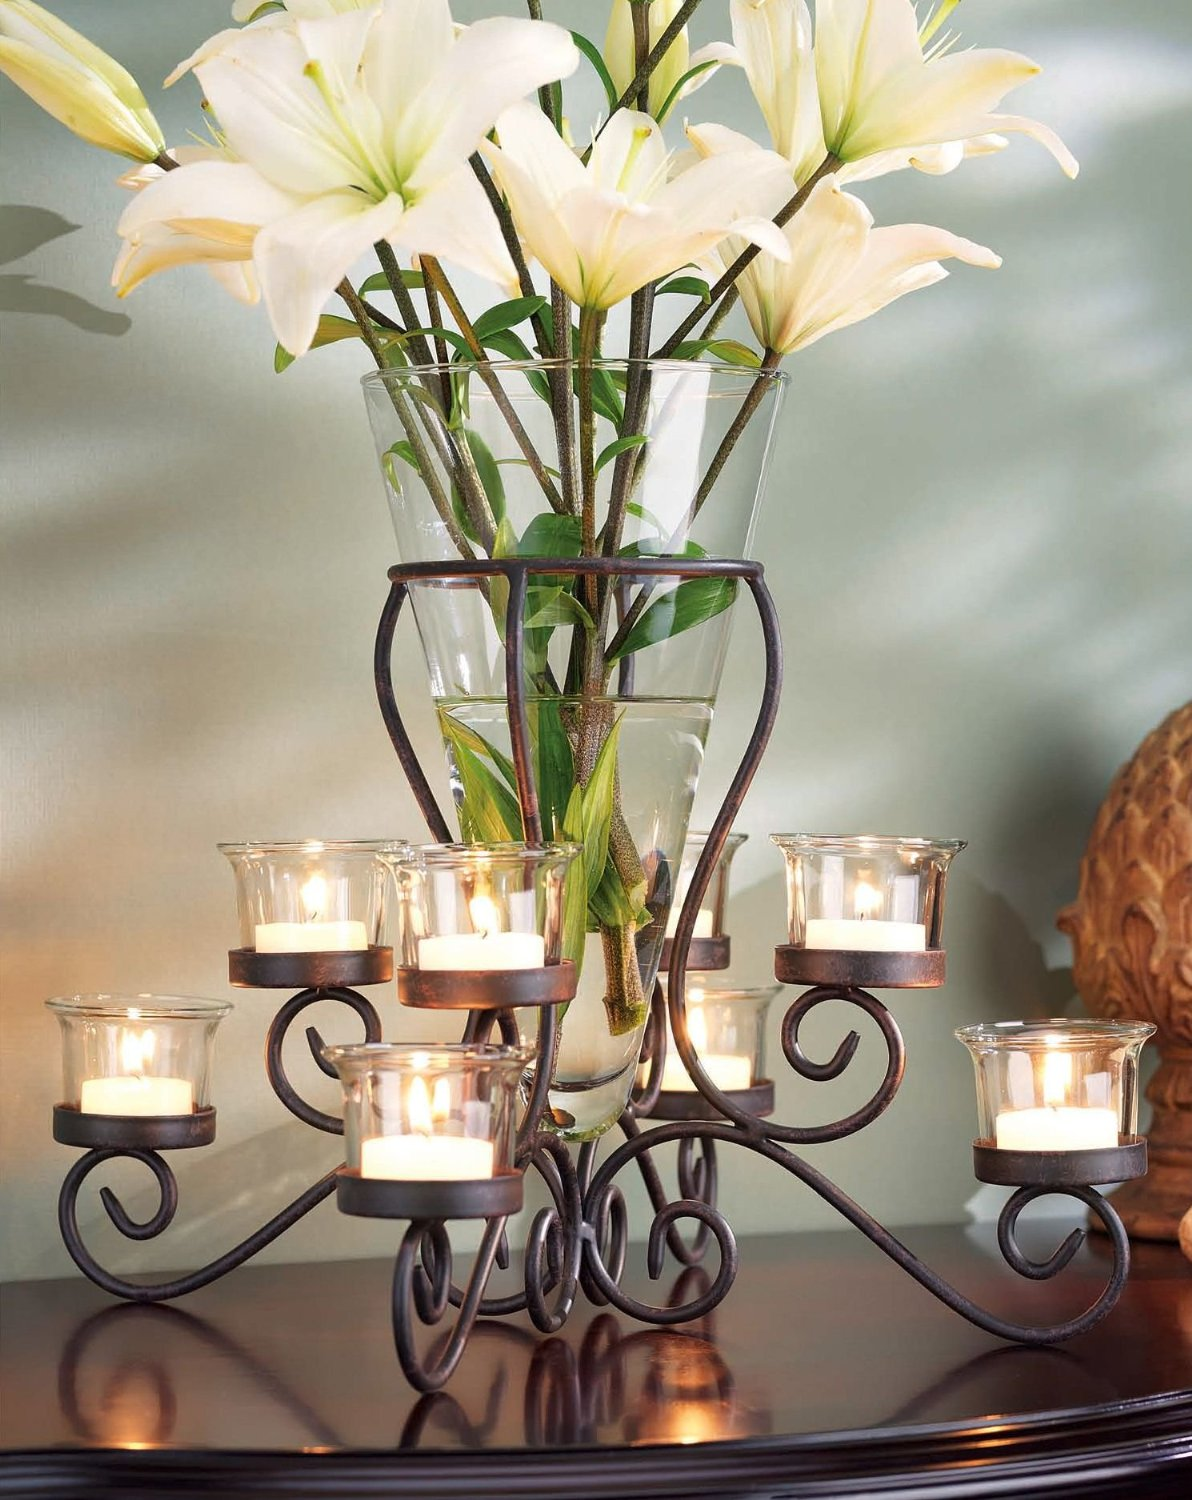 Elegant Wrought Iron Tabletop Tealight Candle Holder Vase Centerpiece